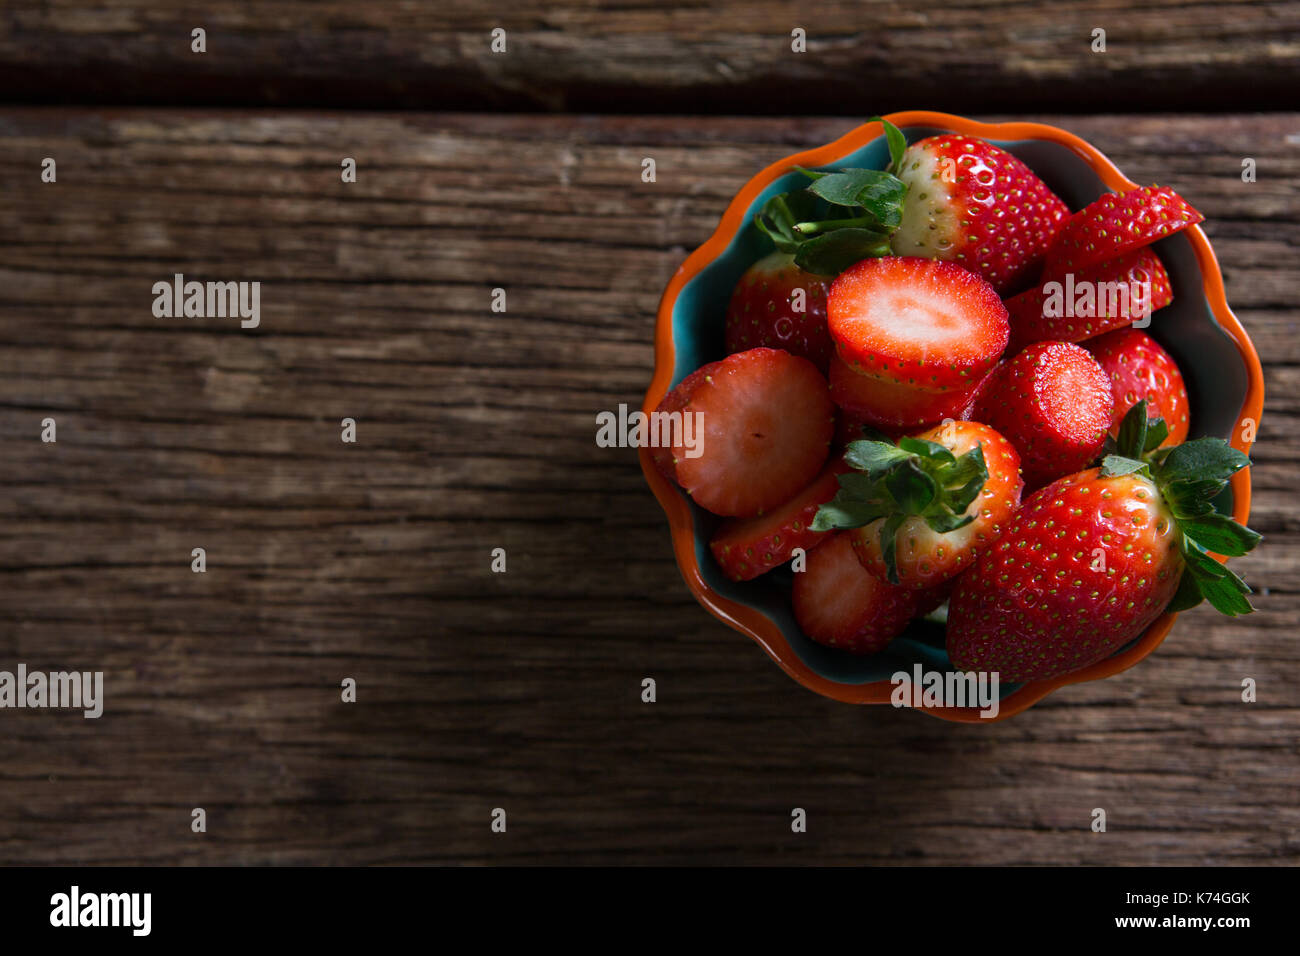 Bowl of strawberries on wooden table - Stock Image